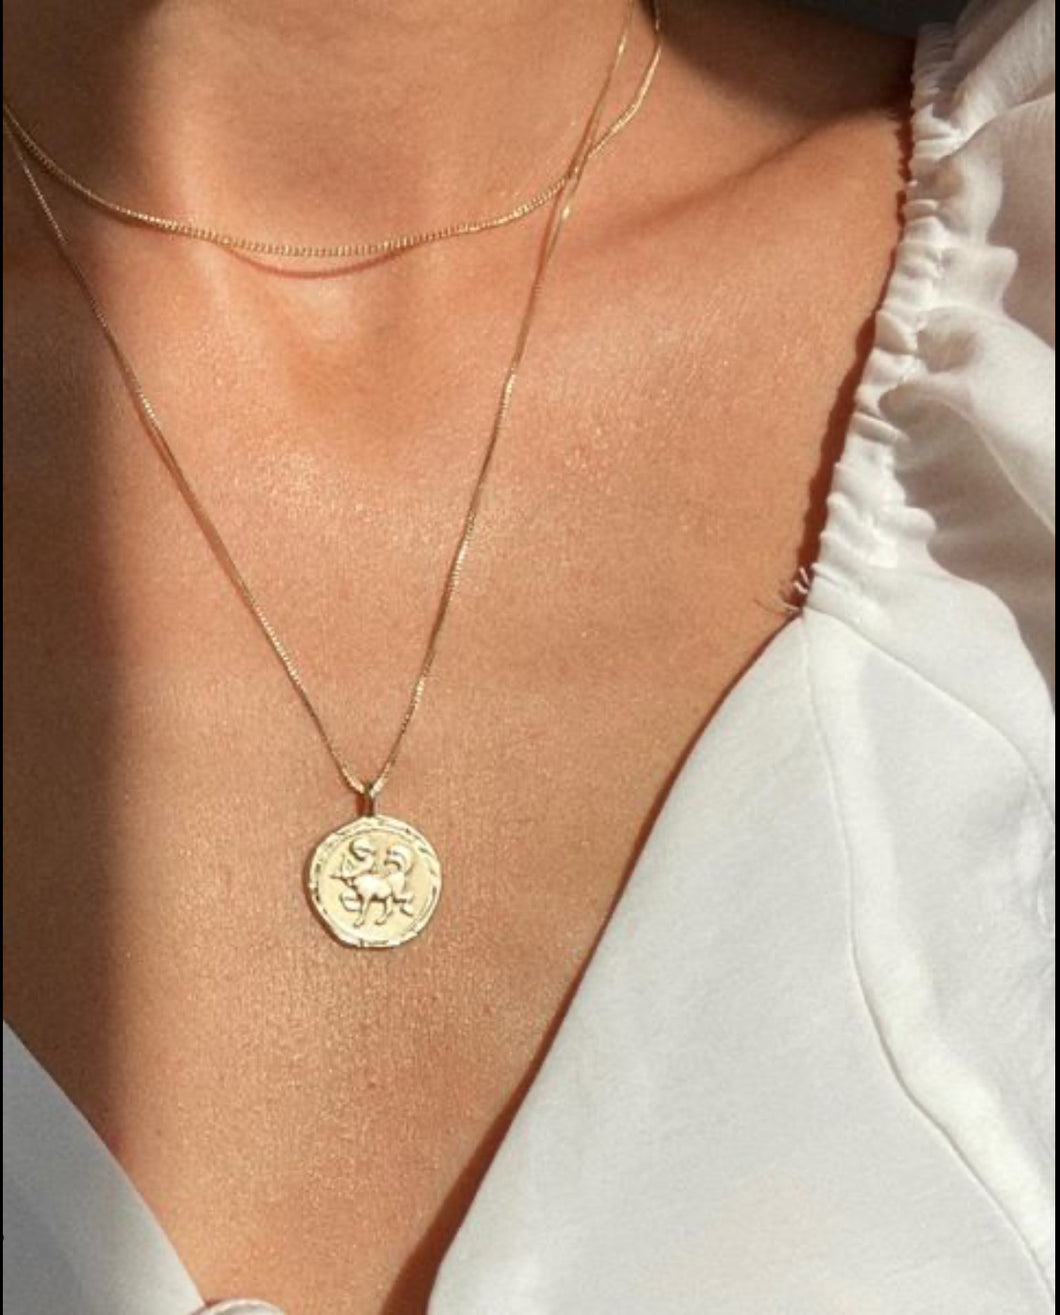 Pilgrim Horoscope Hammered Necklace